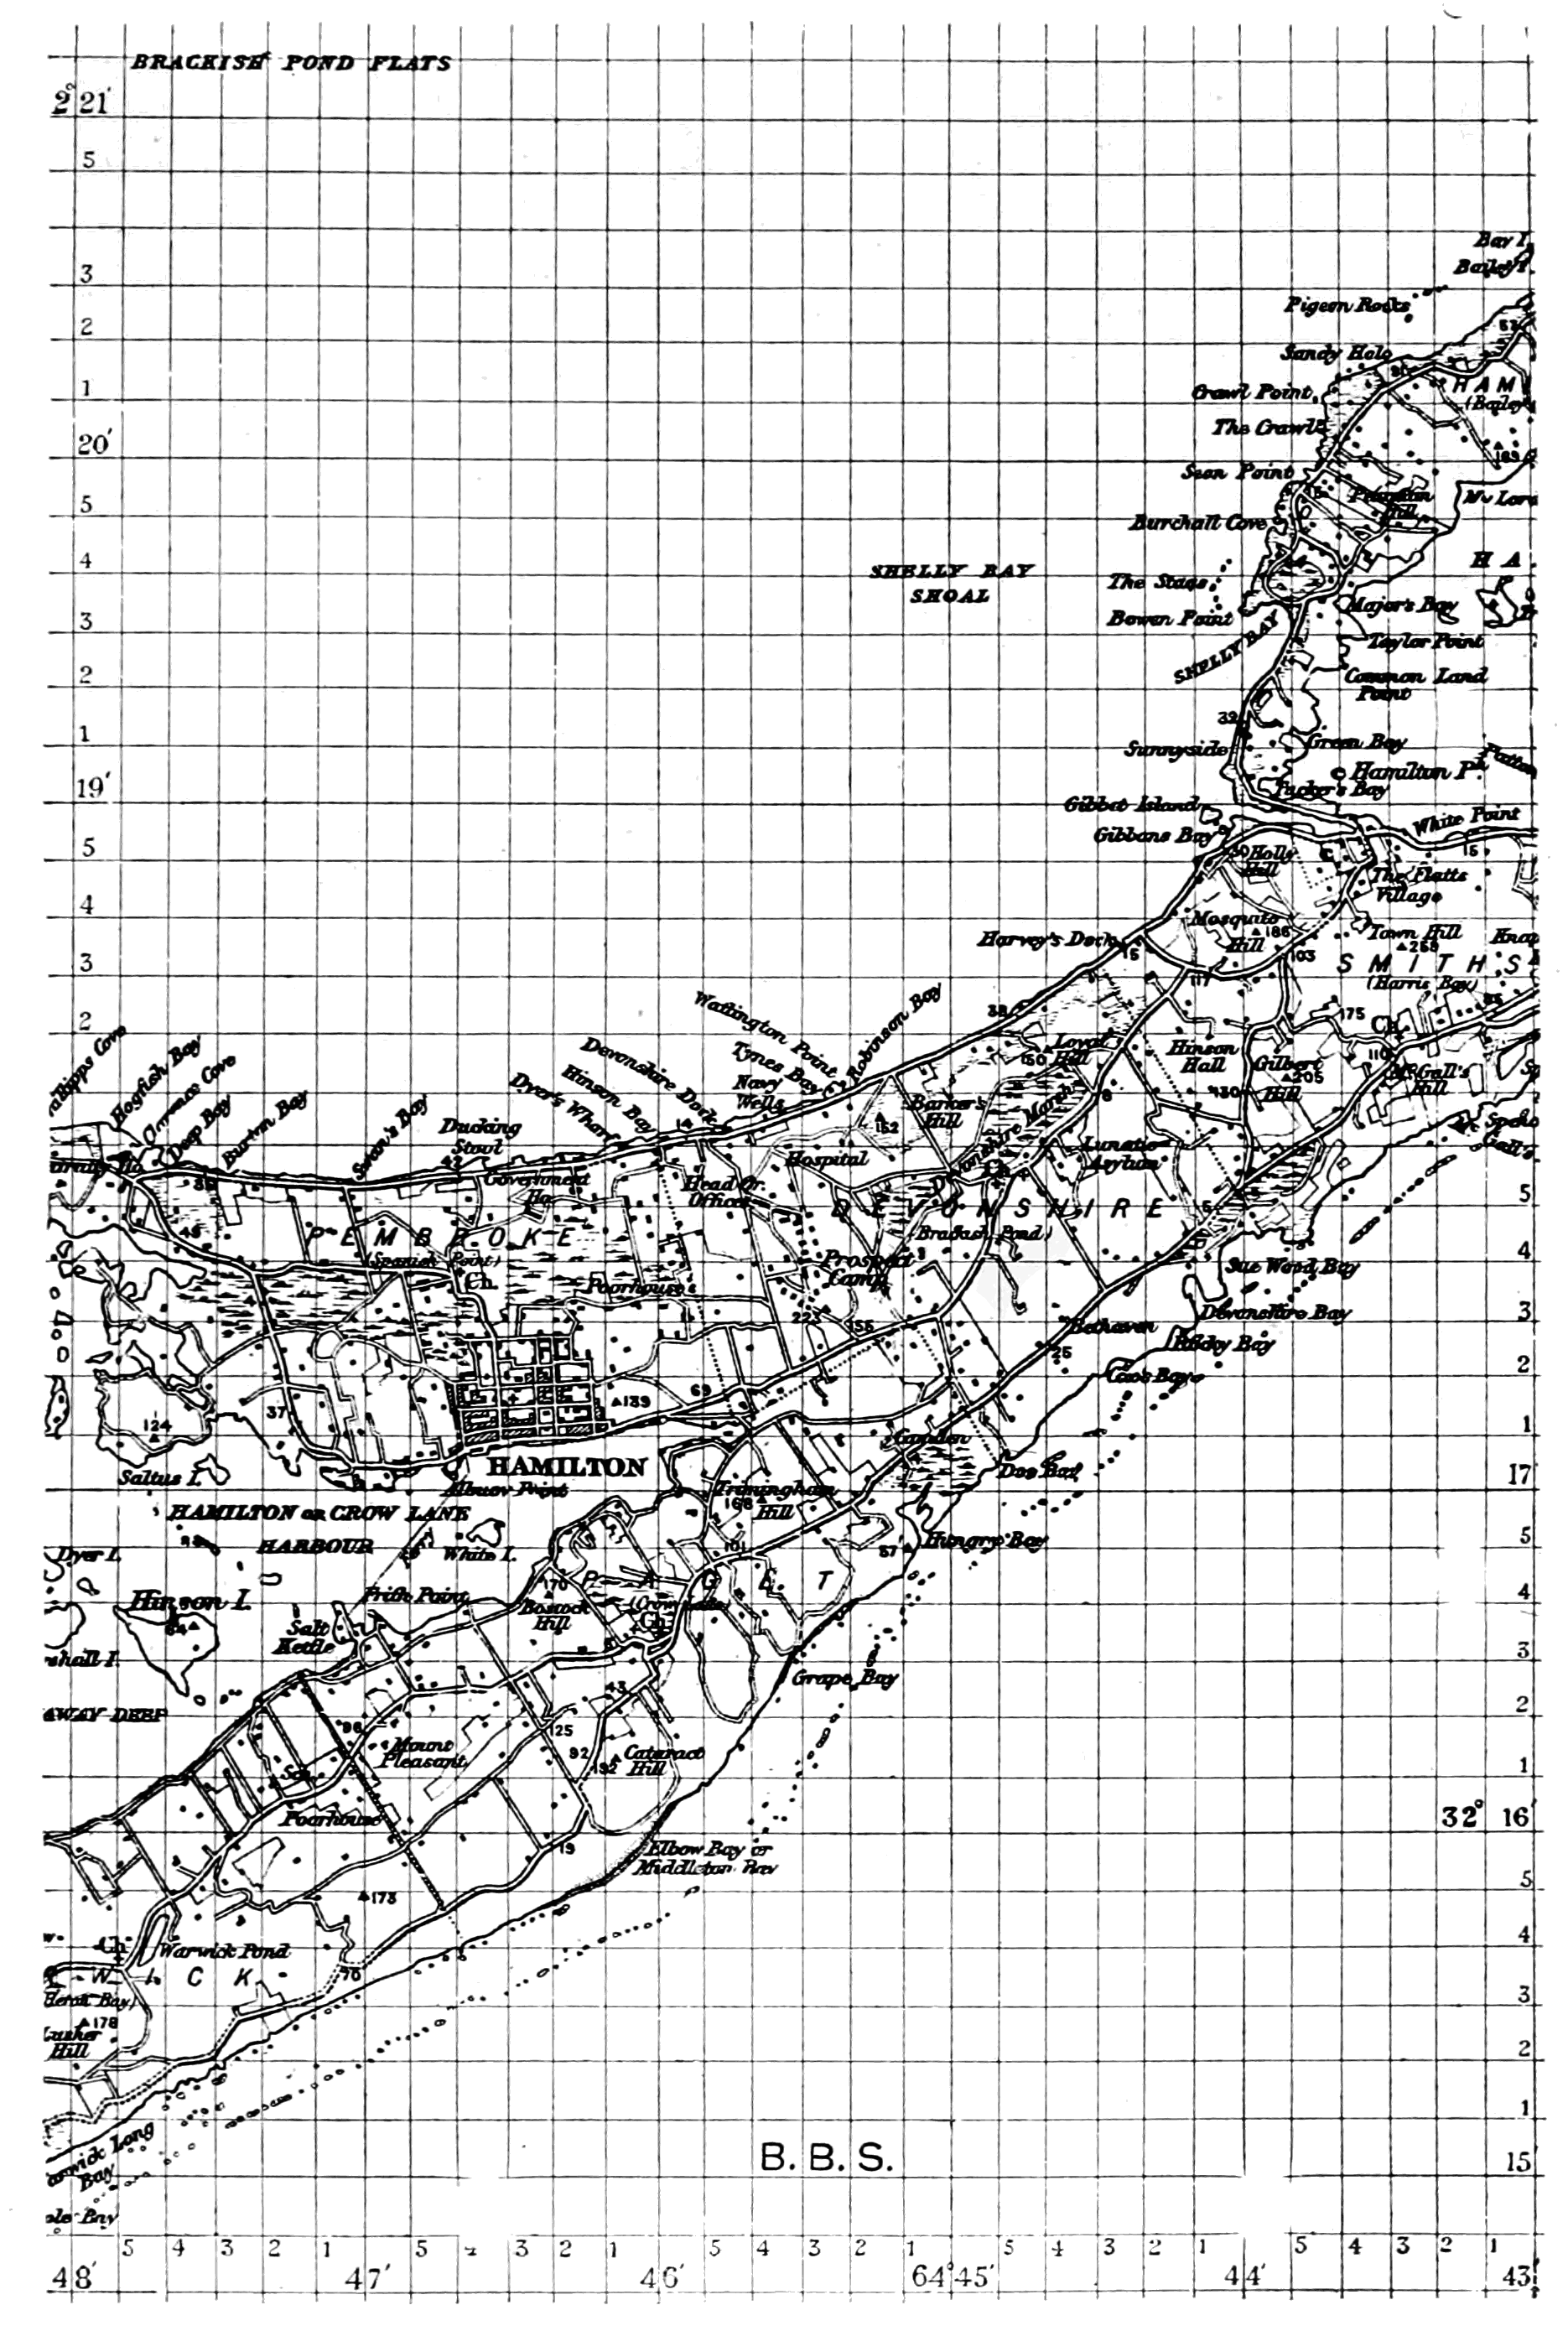 PSM V66 D403 Map of central third of the bermuda islands.png